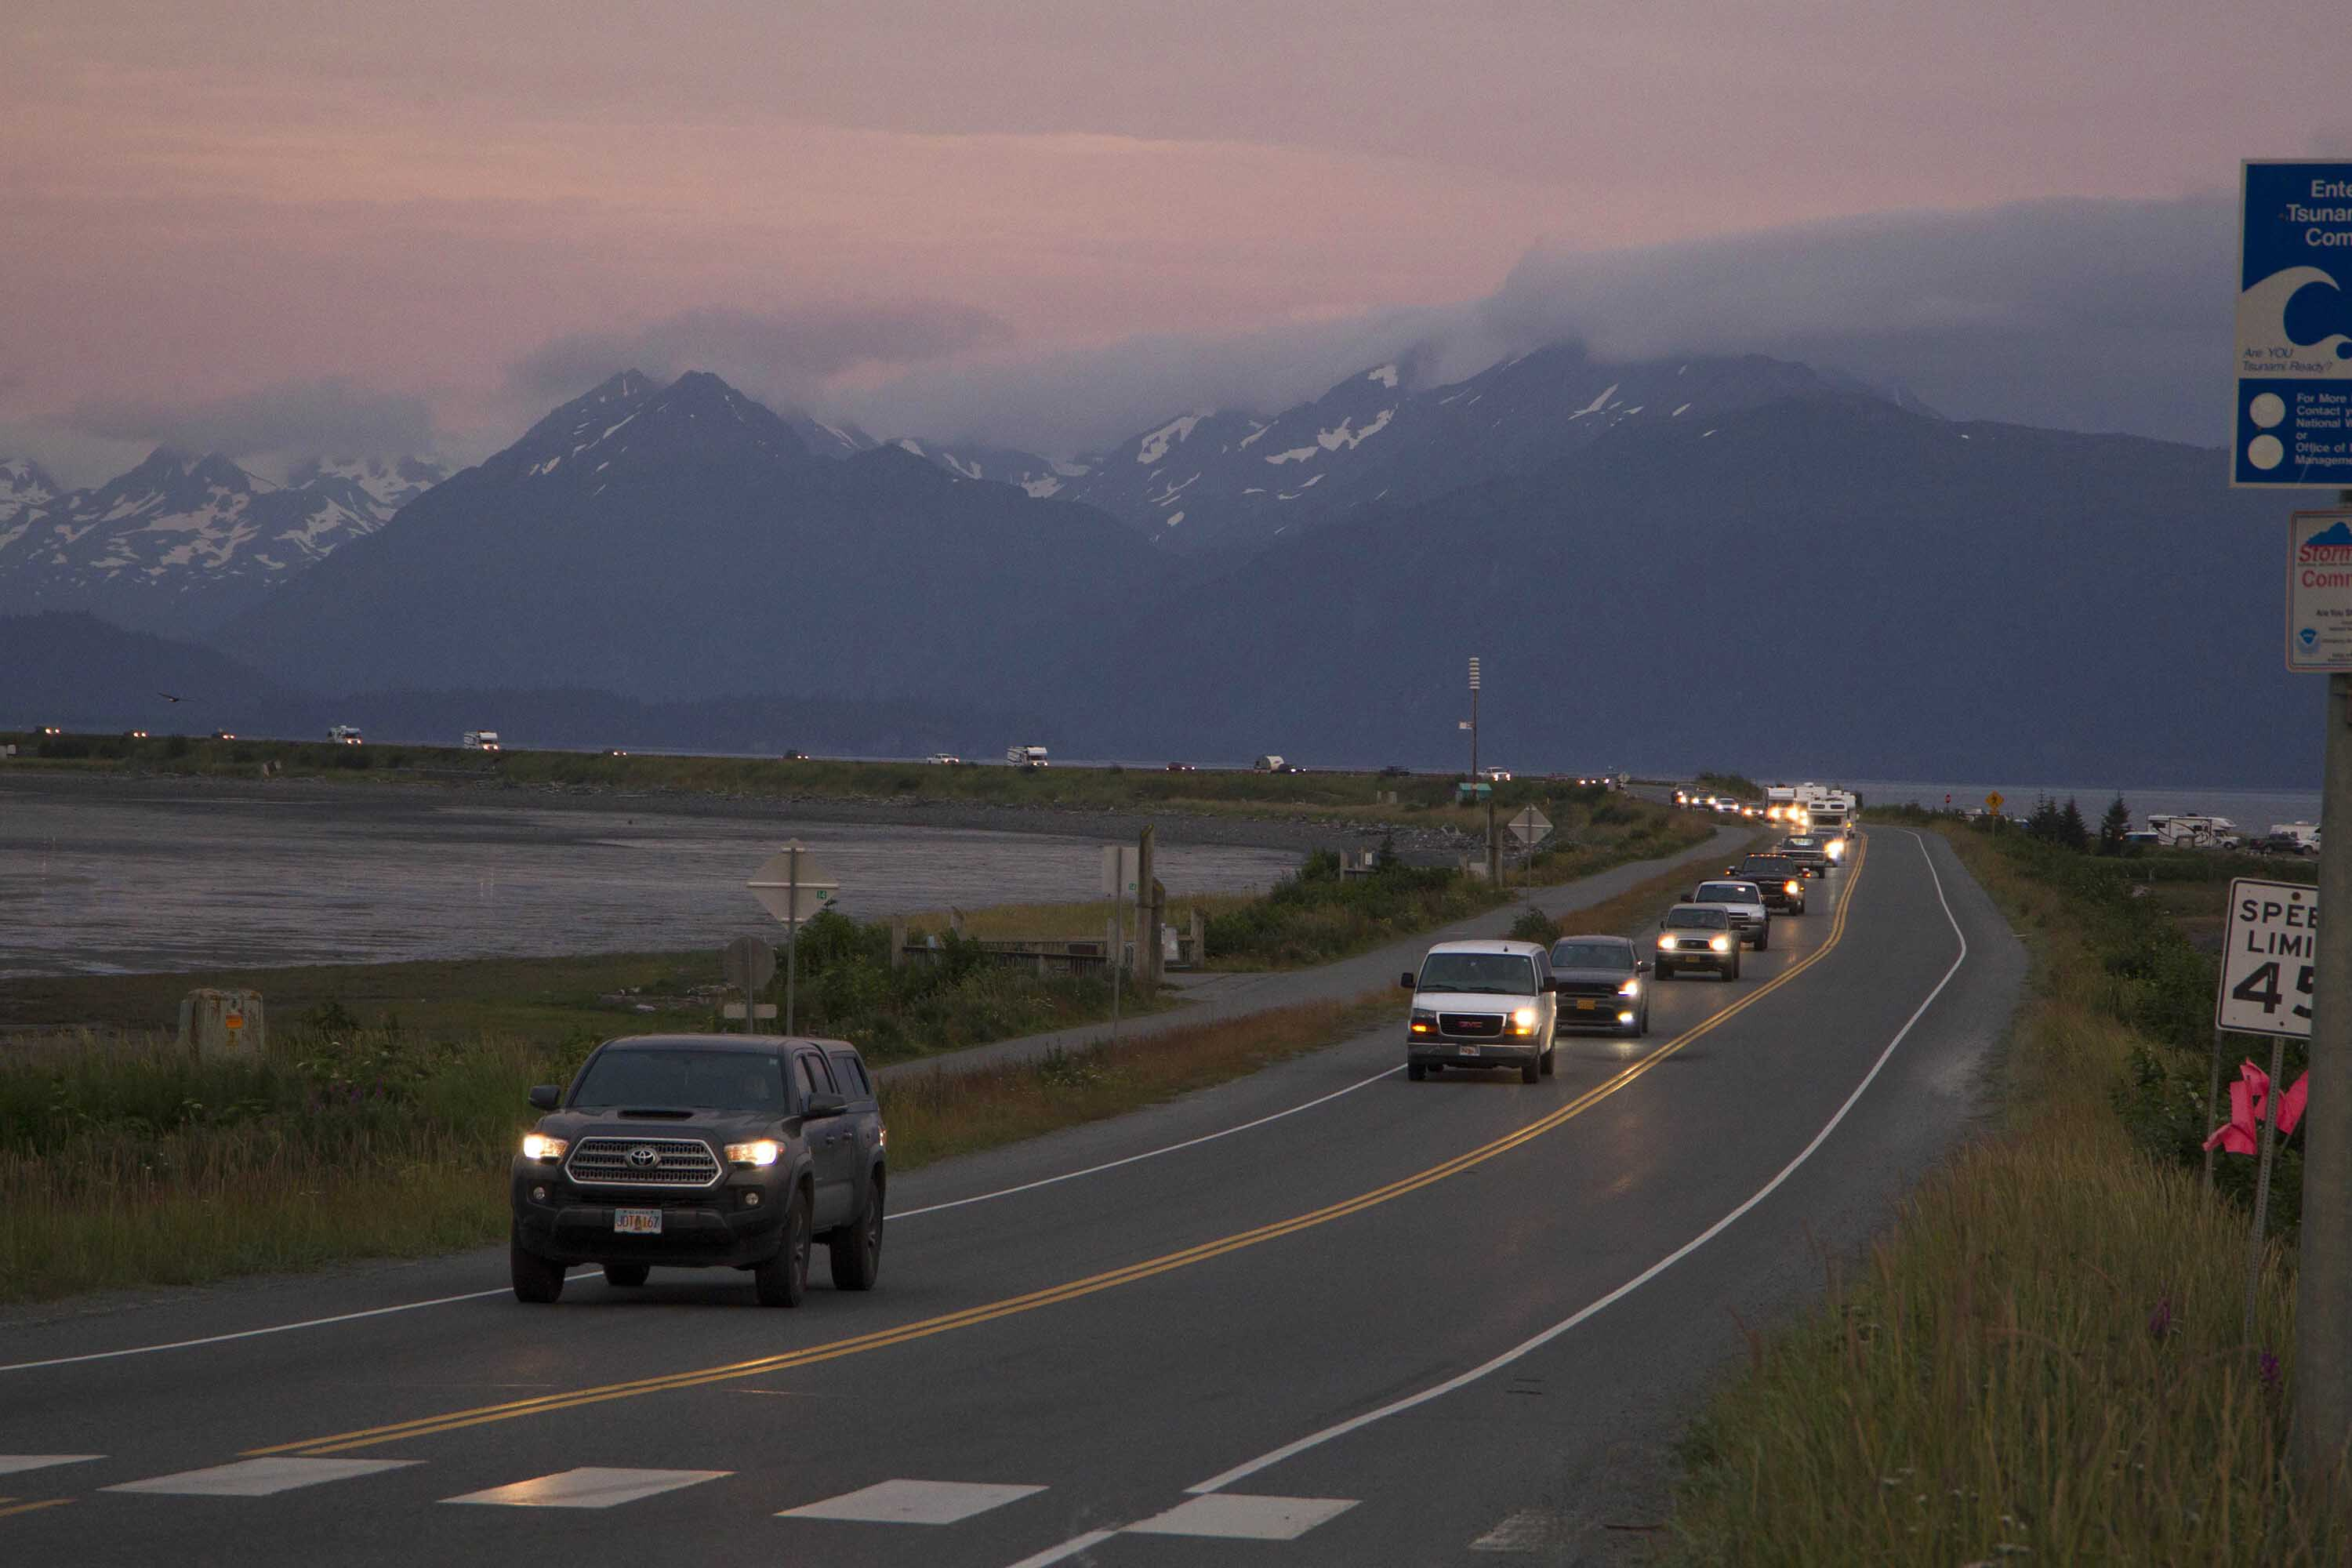 Alaskan coast 8.2 magnitude earthquake was the strongest one in decades, official says